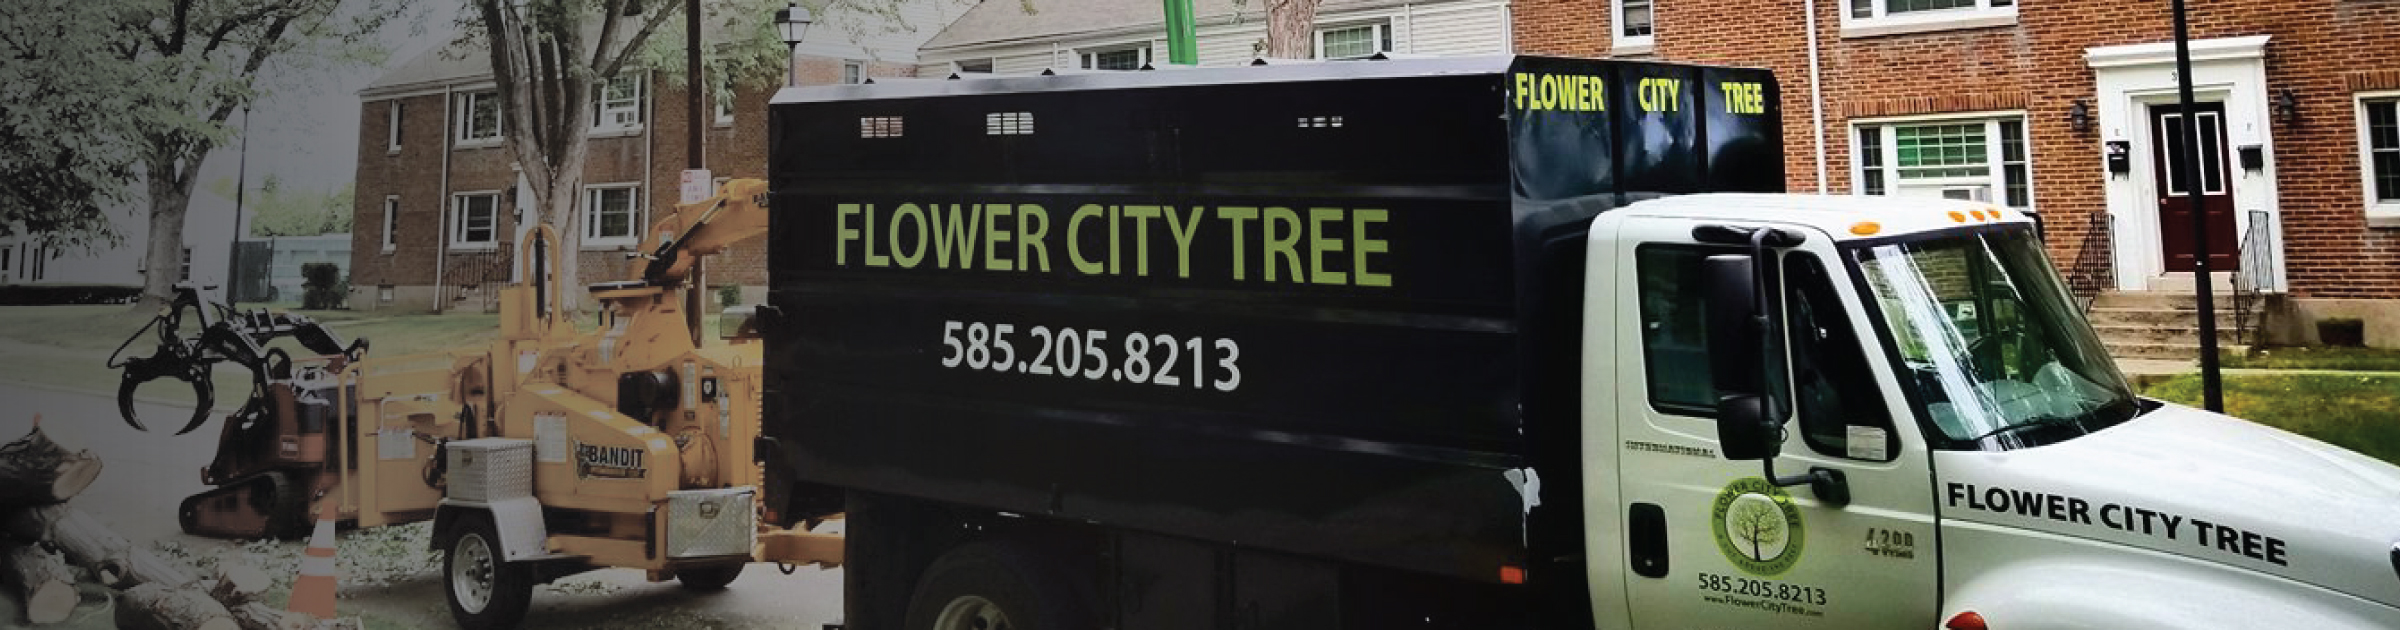 Commercial Tree Services Banner Image